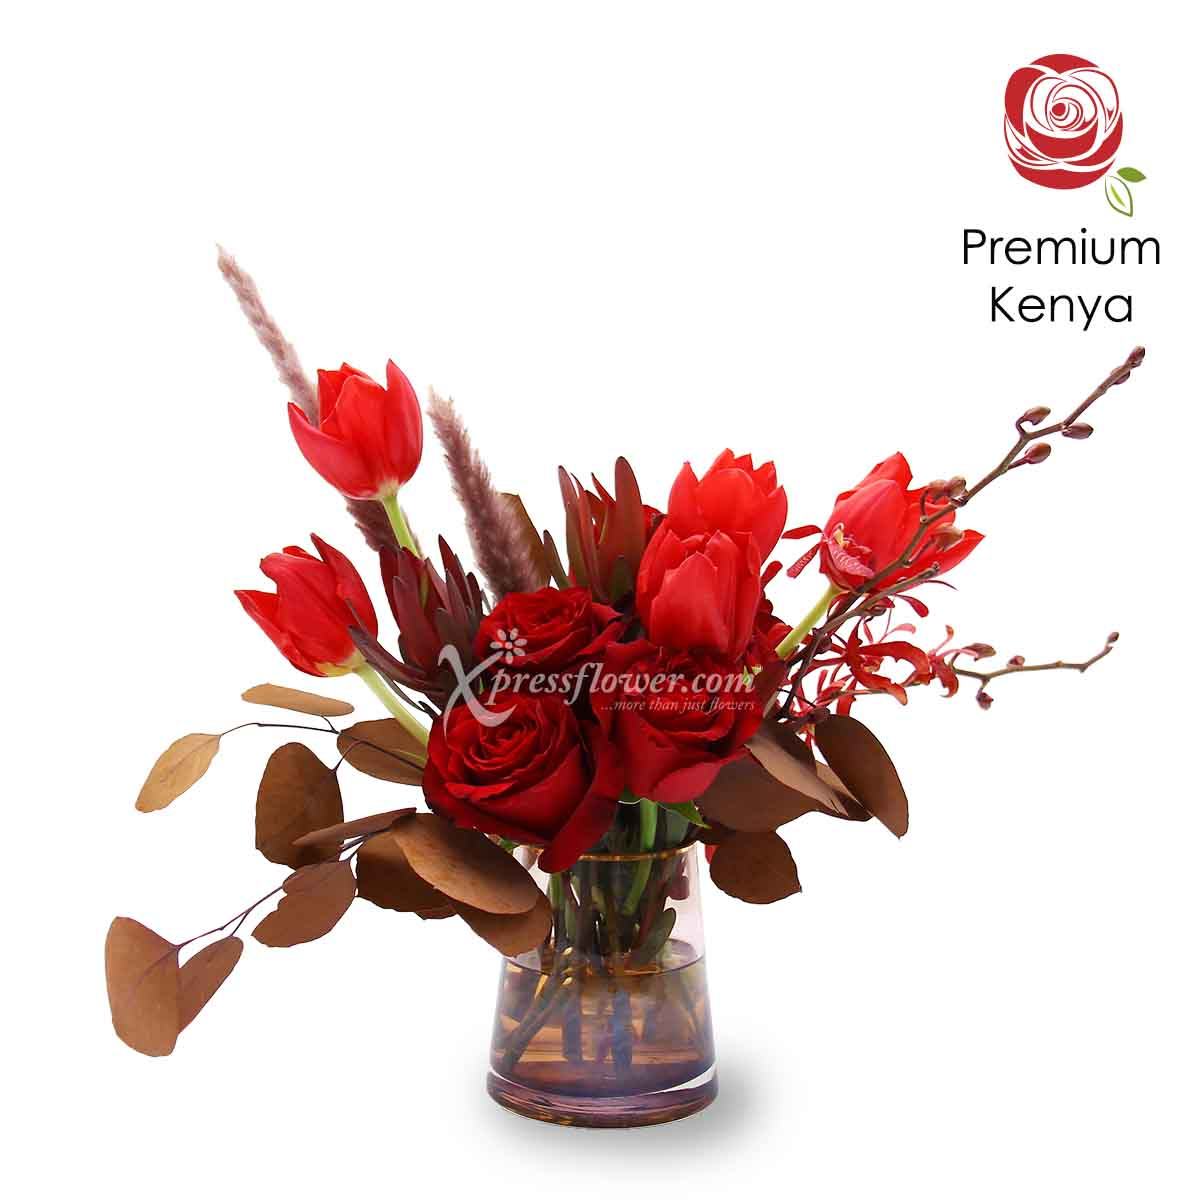 Braveheart (Red Tulips and Premium Kenya Red Roses Flower Arrangement)